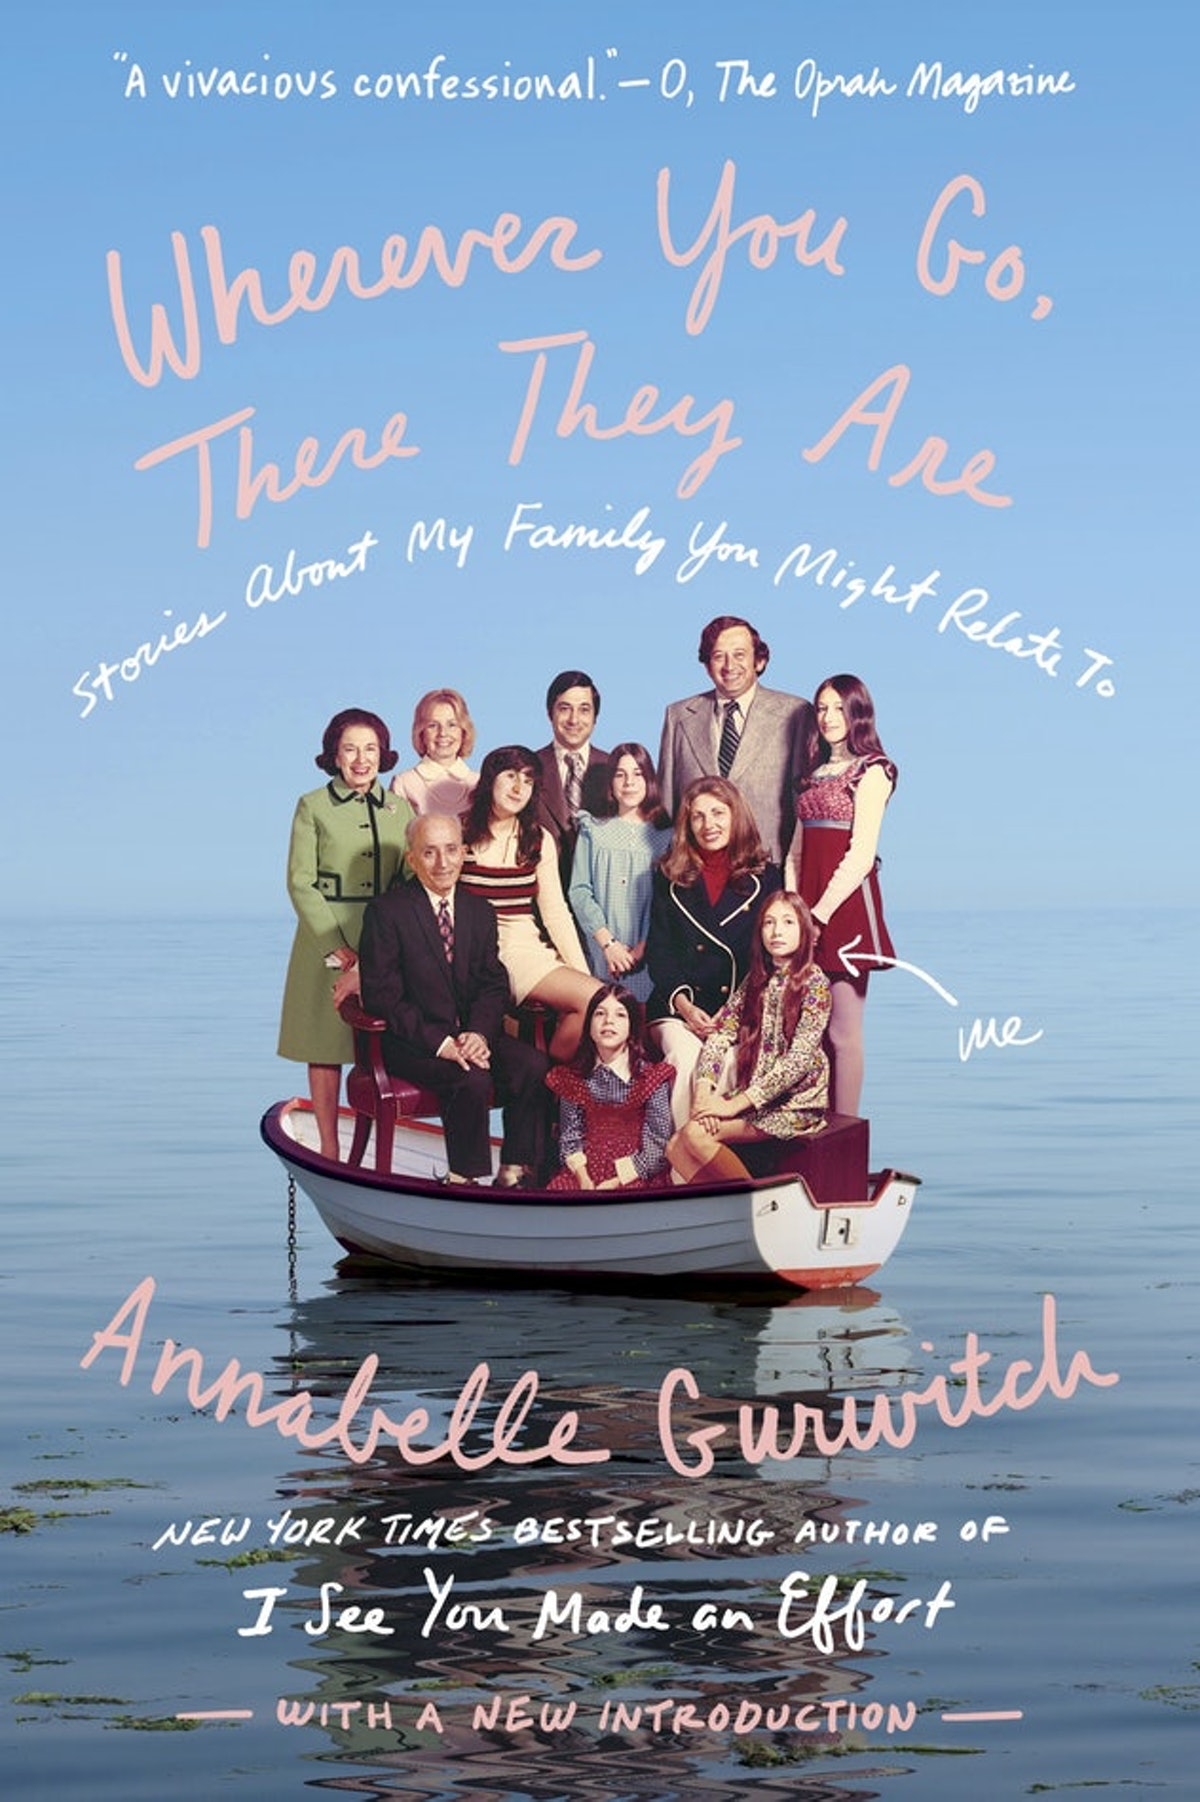 'Wherever You Go, There They Are' by Anabelle Gurwitch